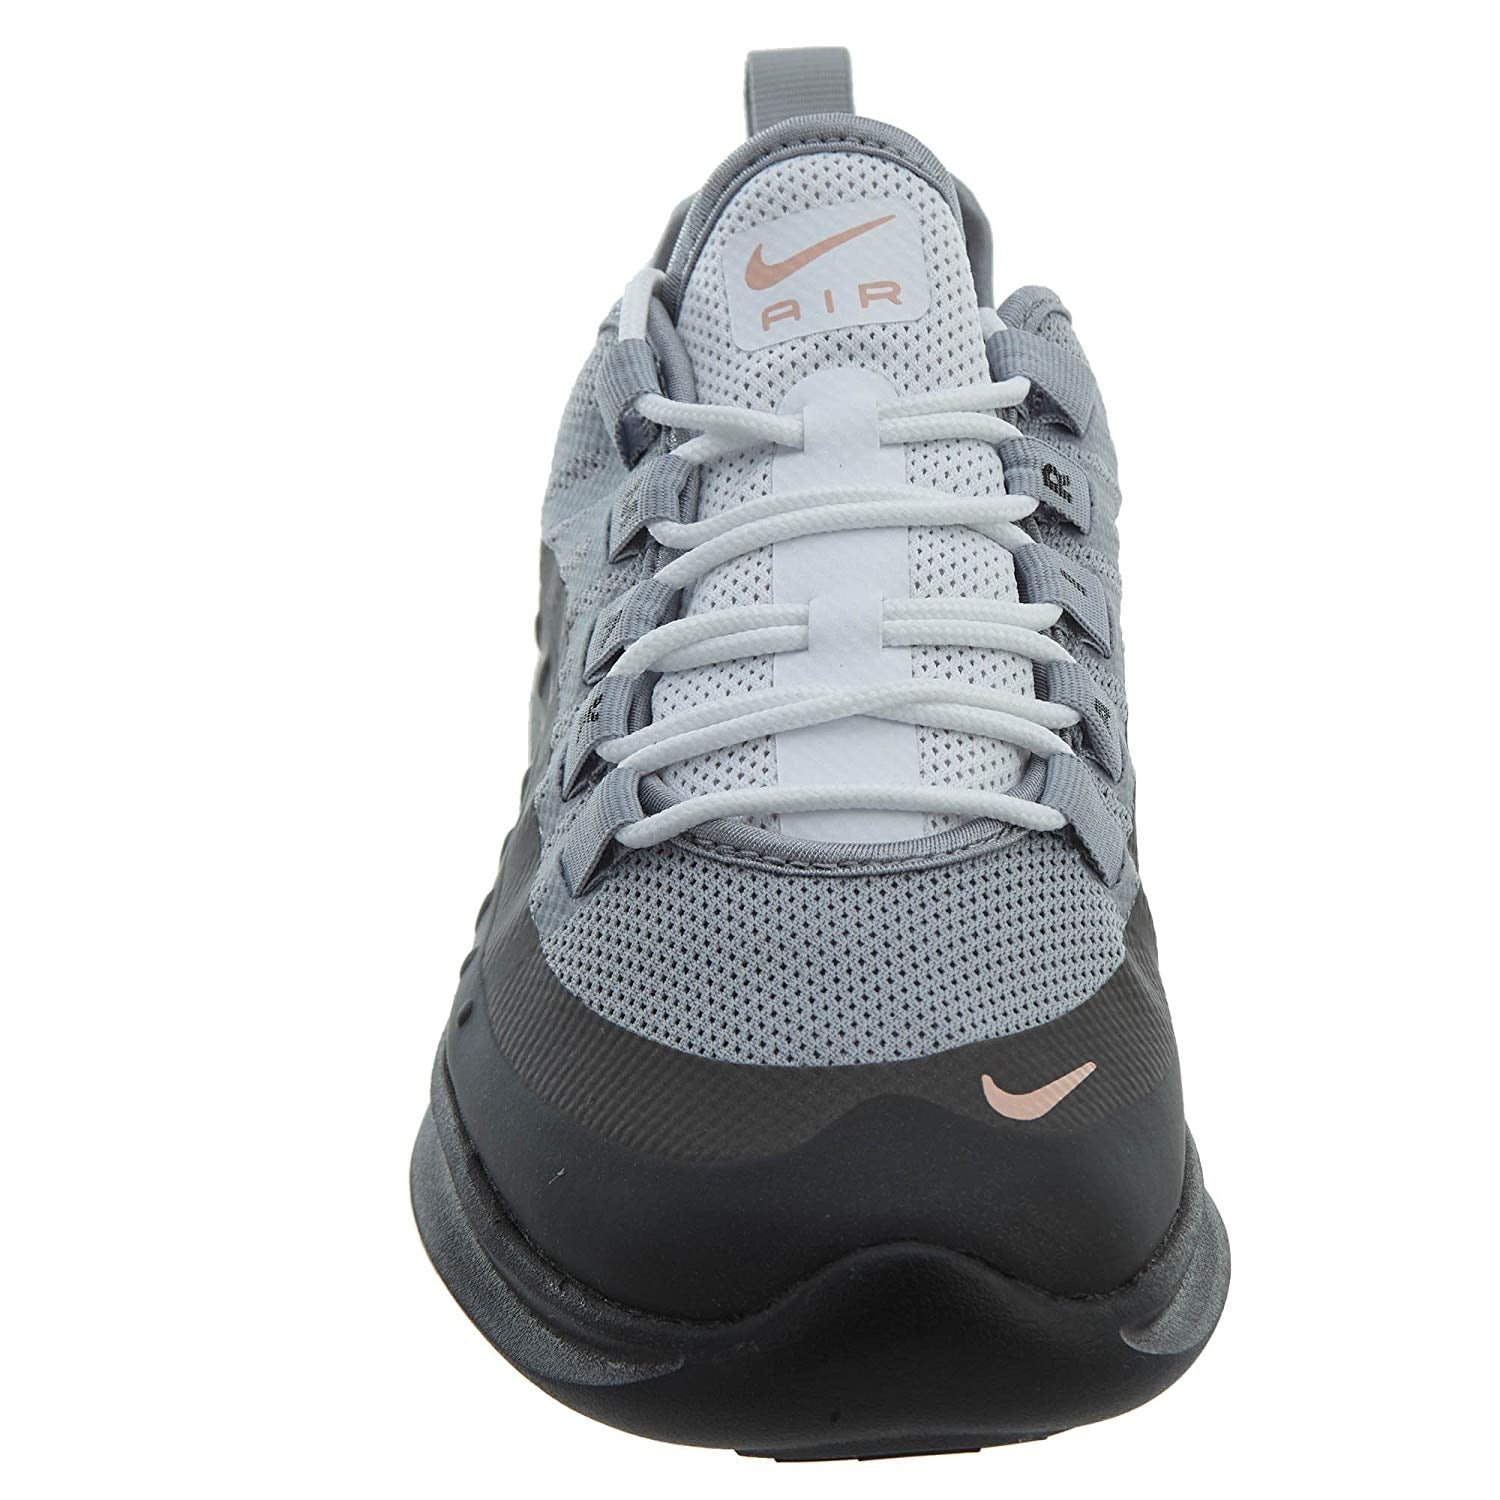 942ac5e3dc4ad7 Shop Nike Wmns Air Max Axis Womens Aa2168-005 Size 7 - Free Shipping Today  - Overstock - 25591319